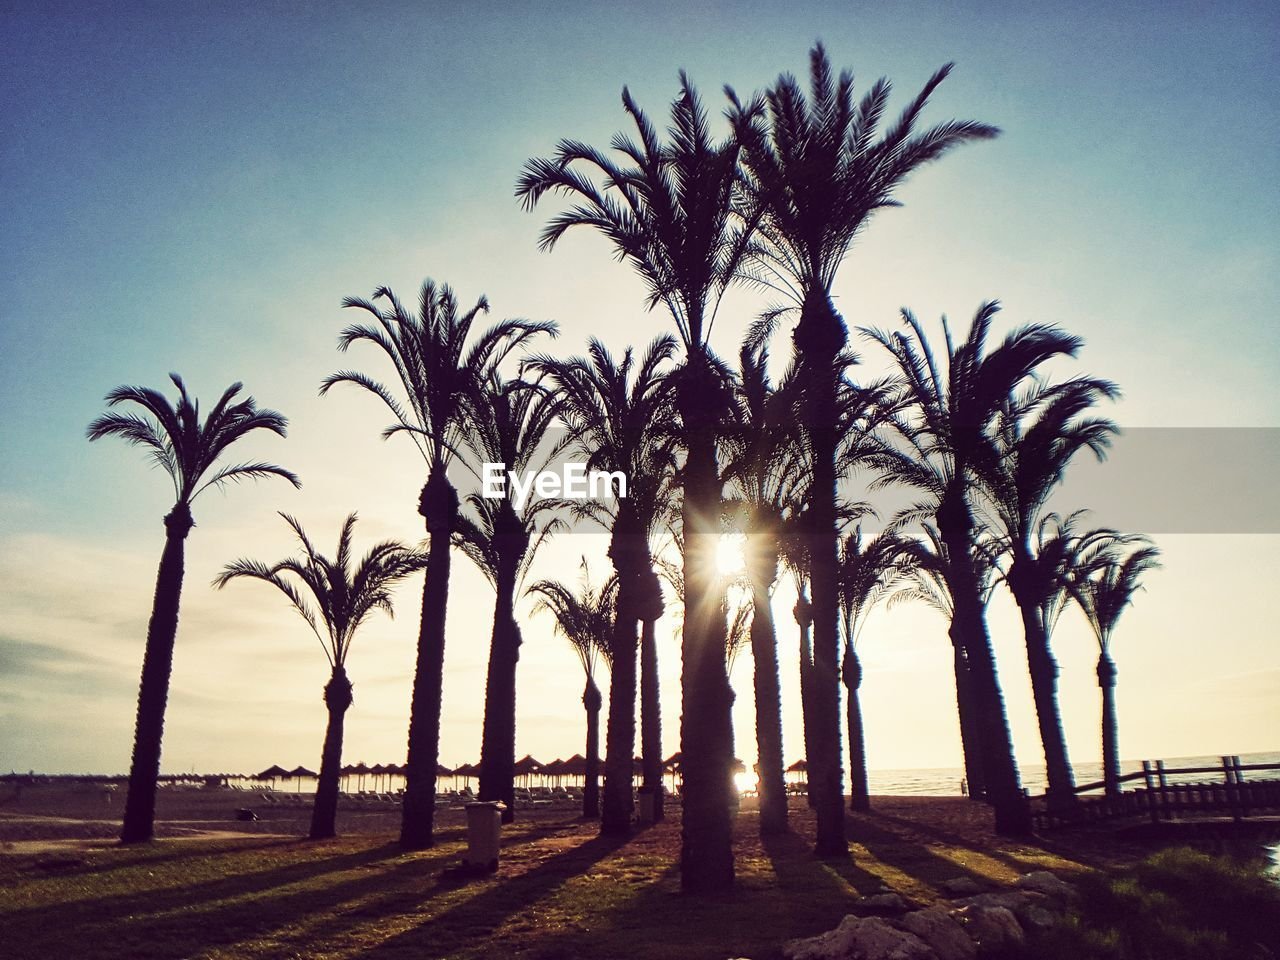 LOW ANGLE VIEW OF PALM TREES ON LANDSCAPE AGAINST SKY